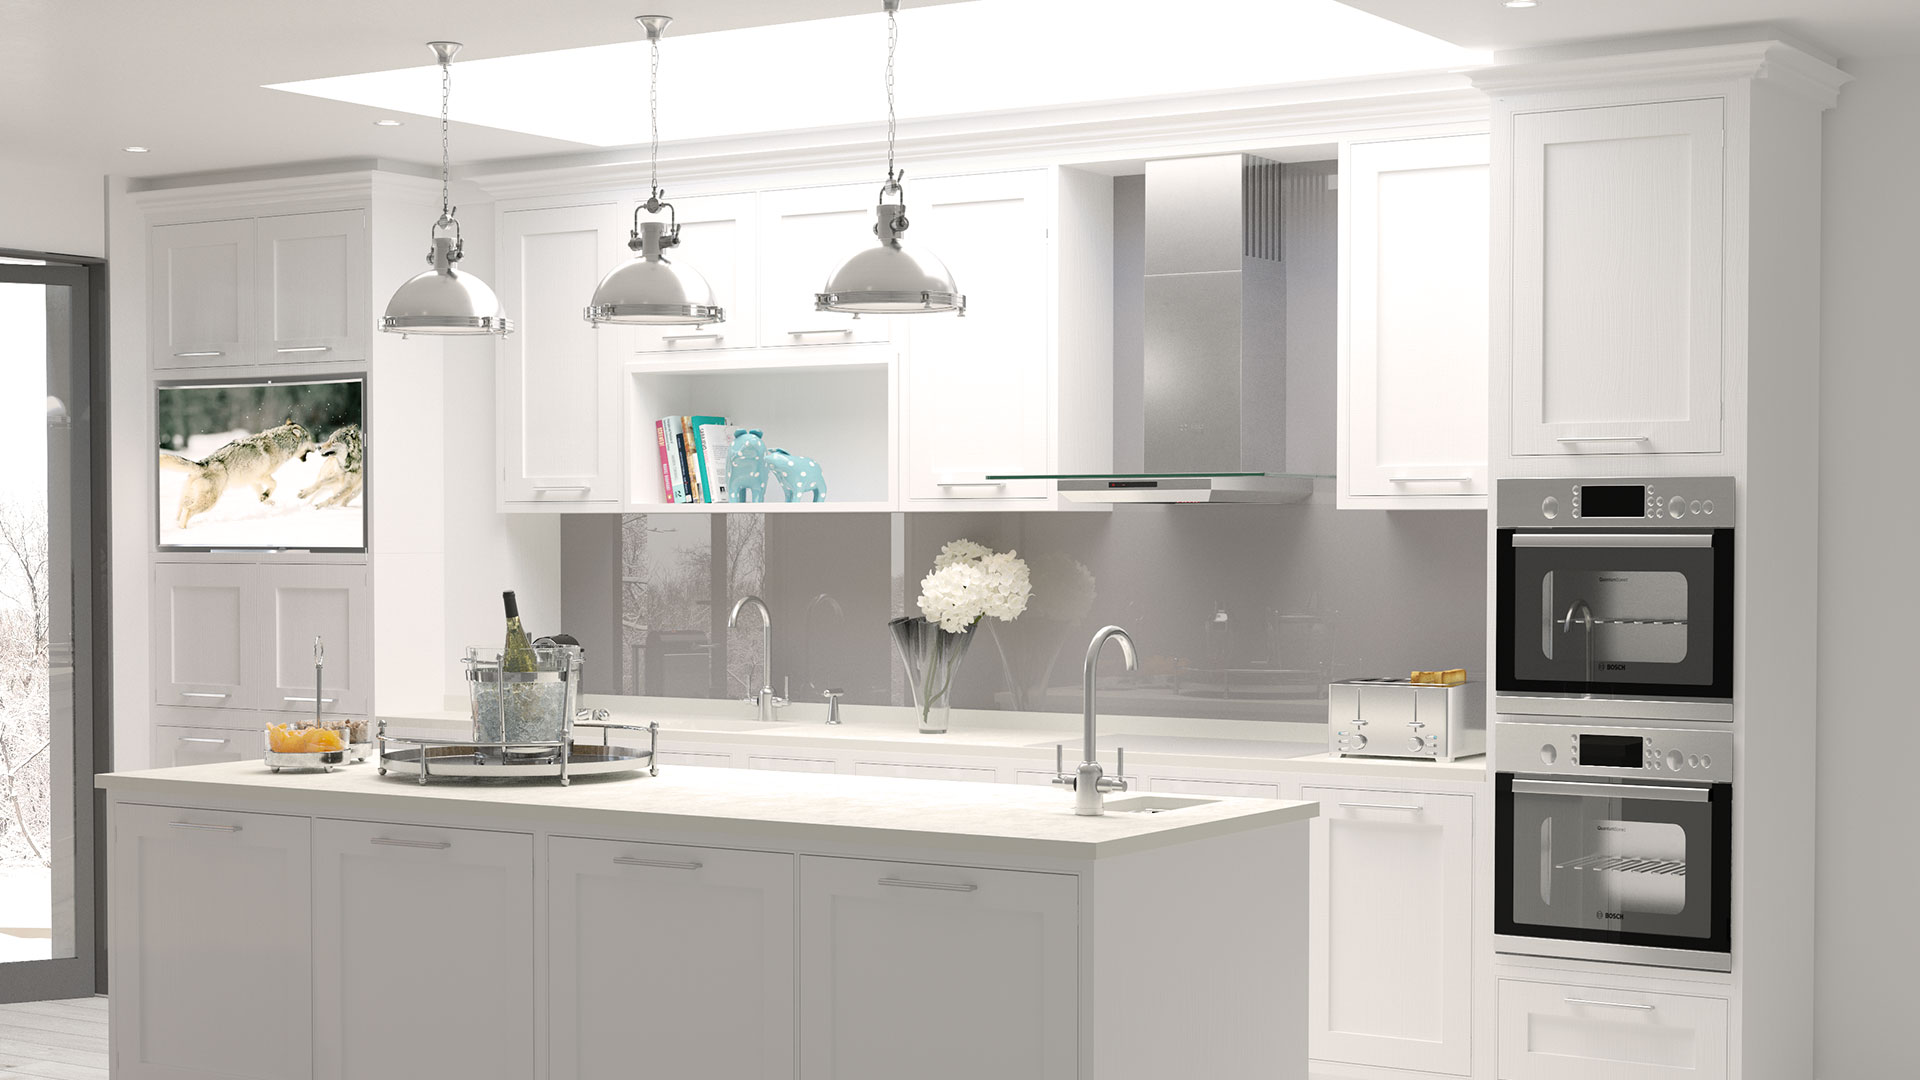 Handmade Bespoke Kitchens by Broadway London and South East